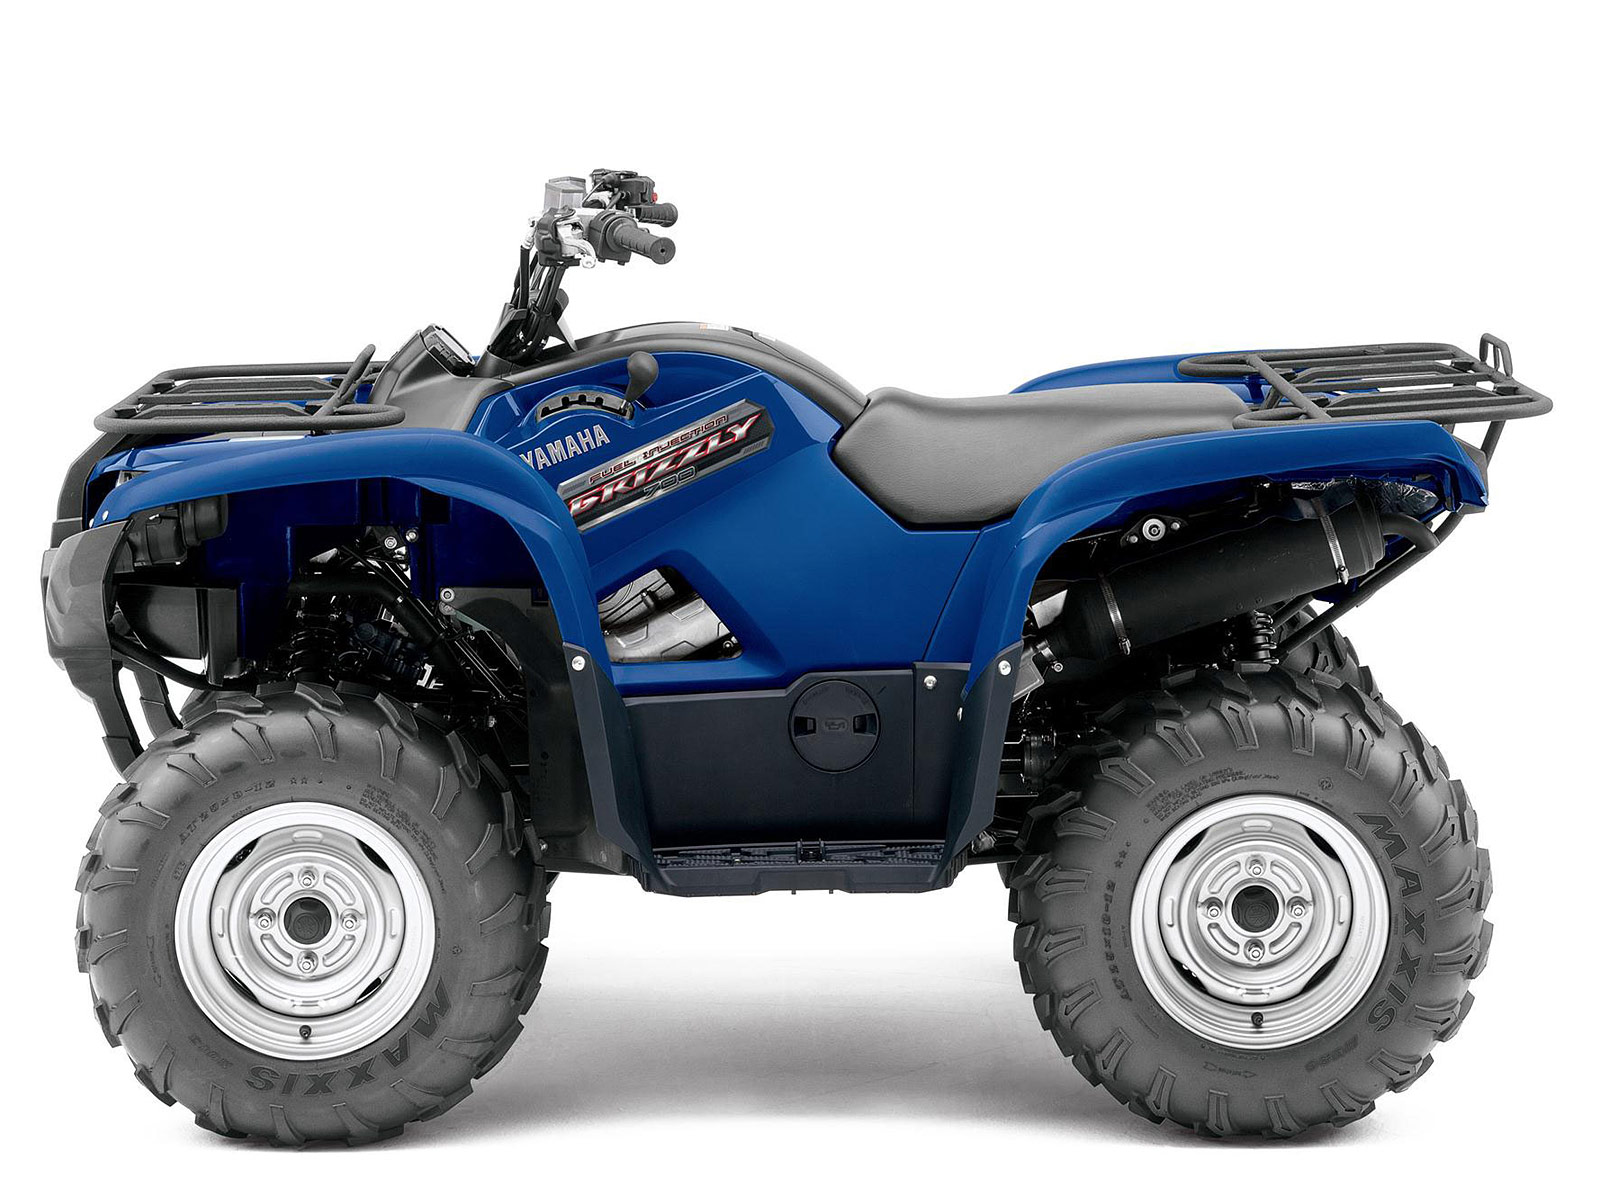 2013 Grizzly 700 FI Auto 4x4 YAMAHA ATV pictures, specs